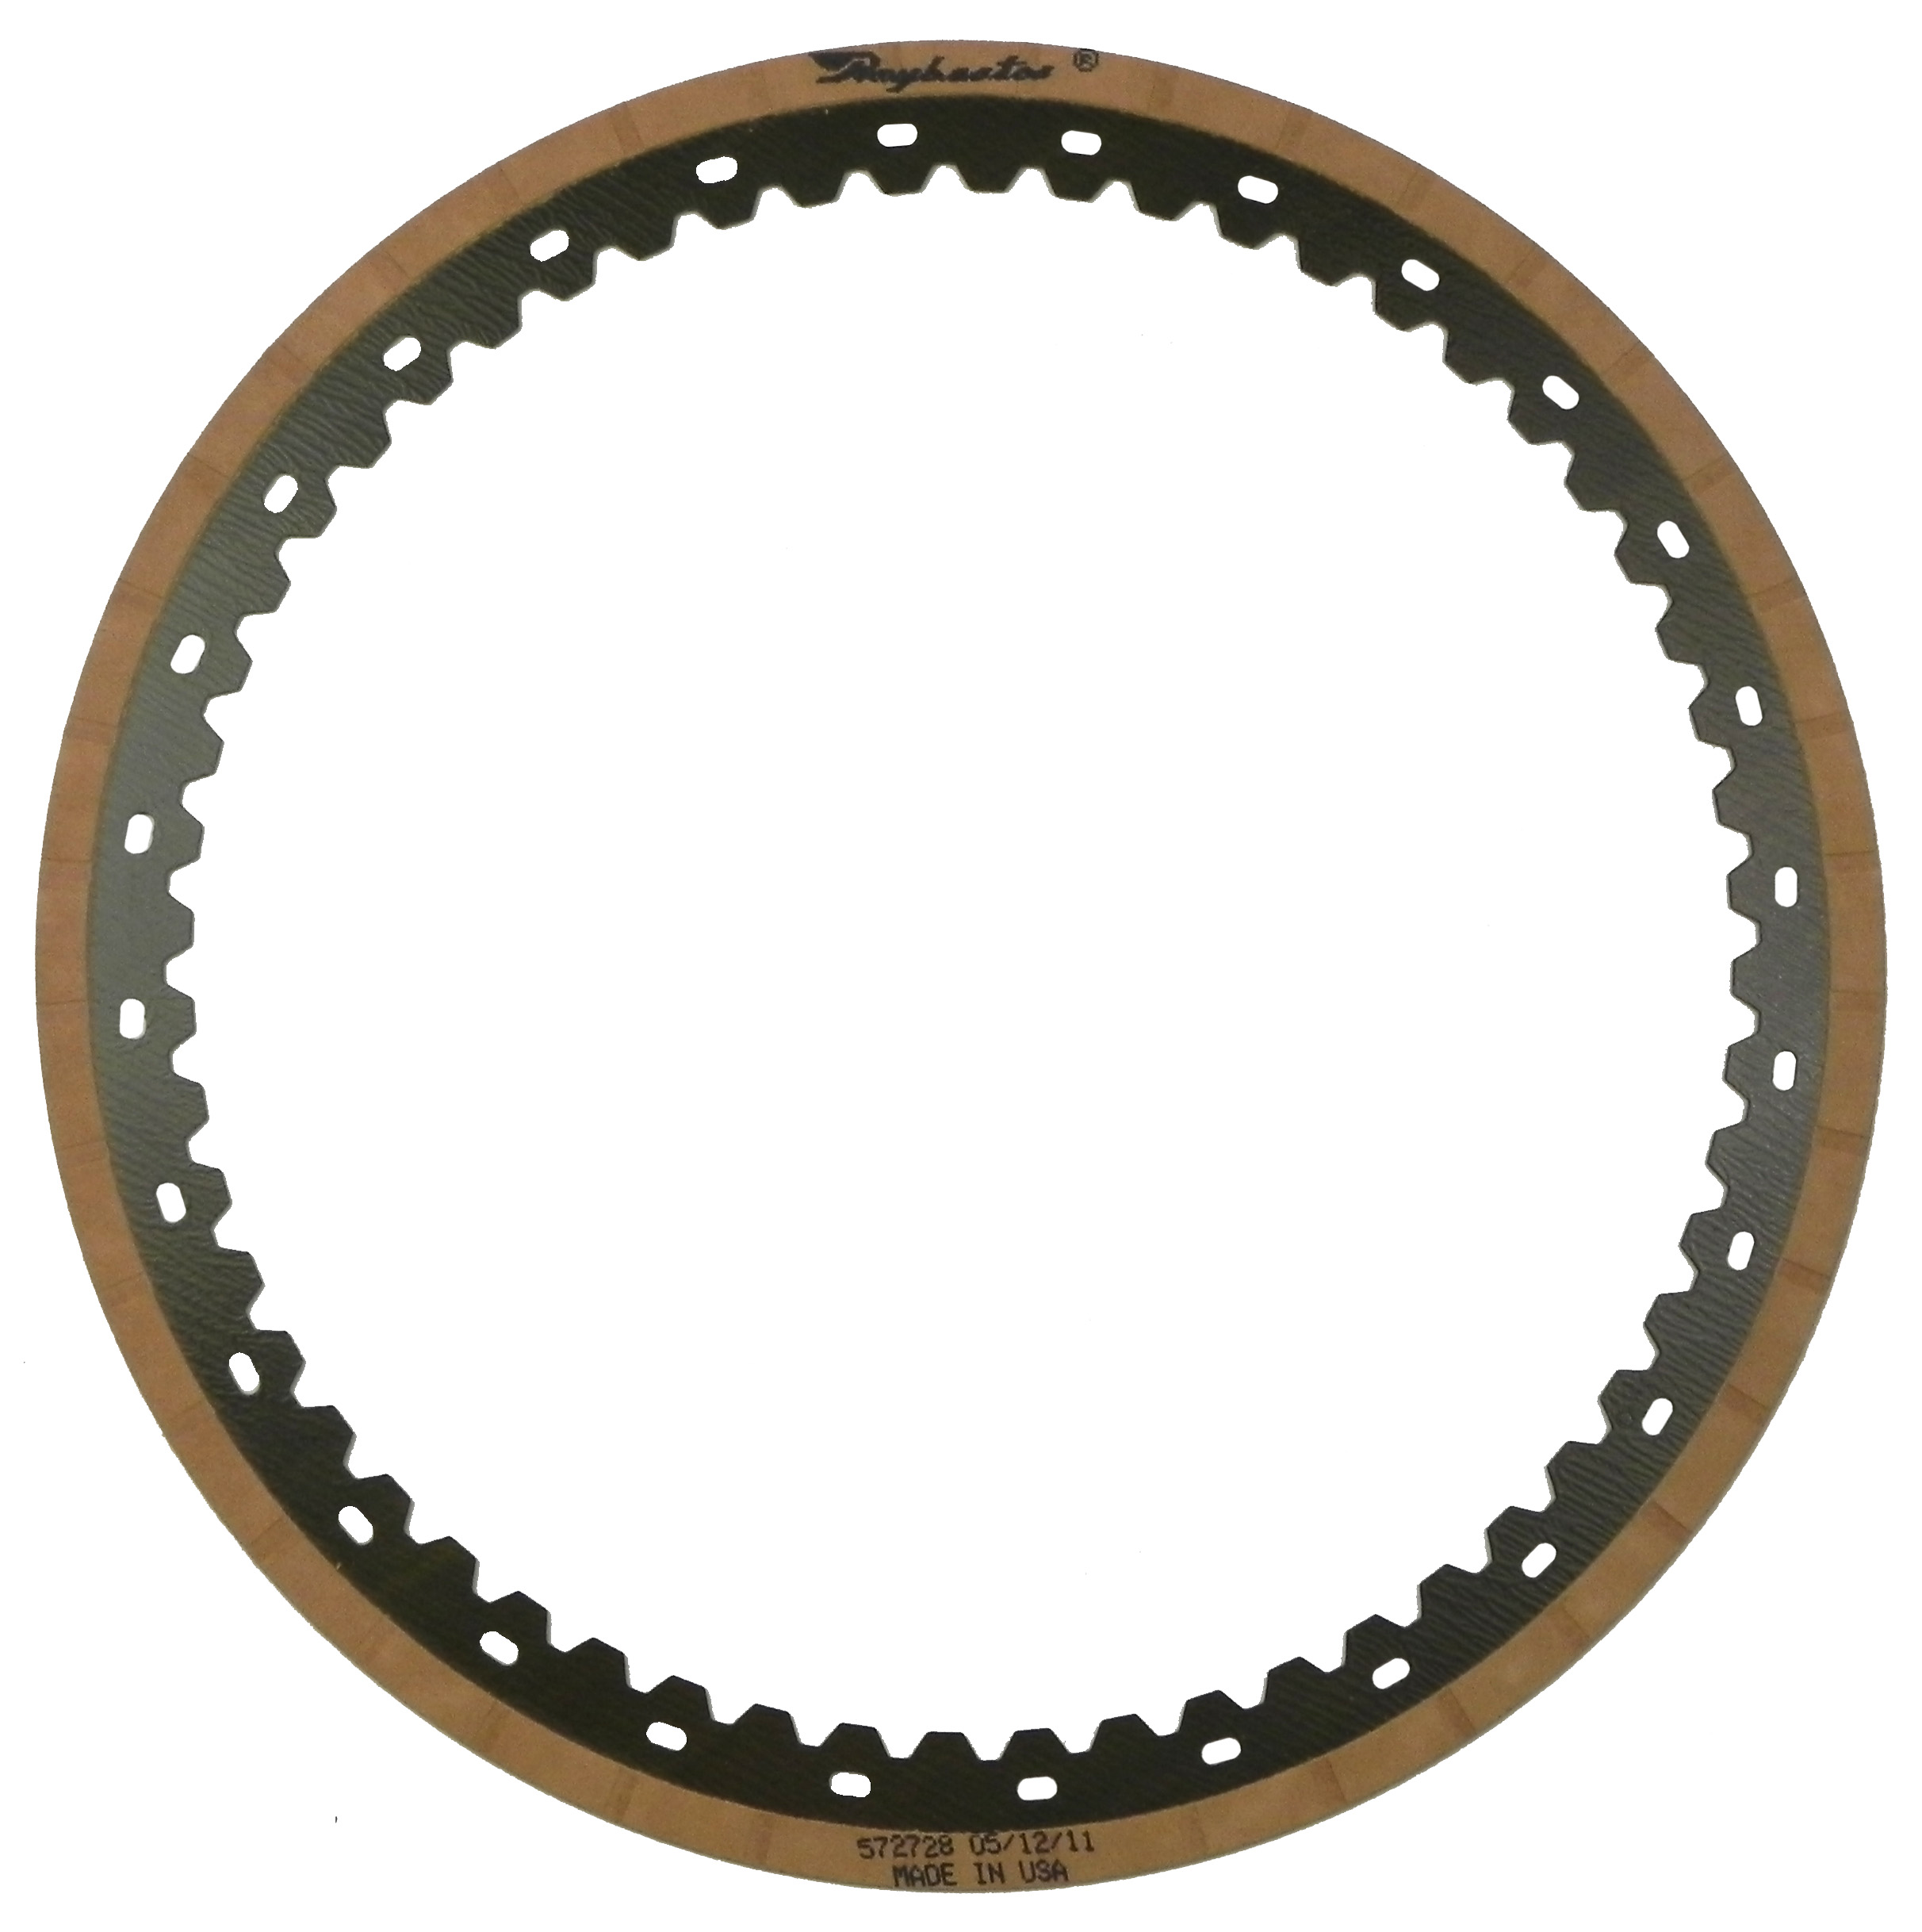 R572728 | 2006-ON Friction Clutch Plate OE Replacement B2 09M Clutch